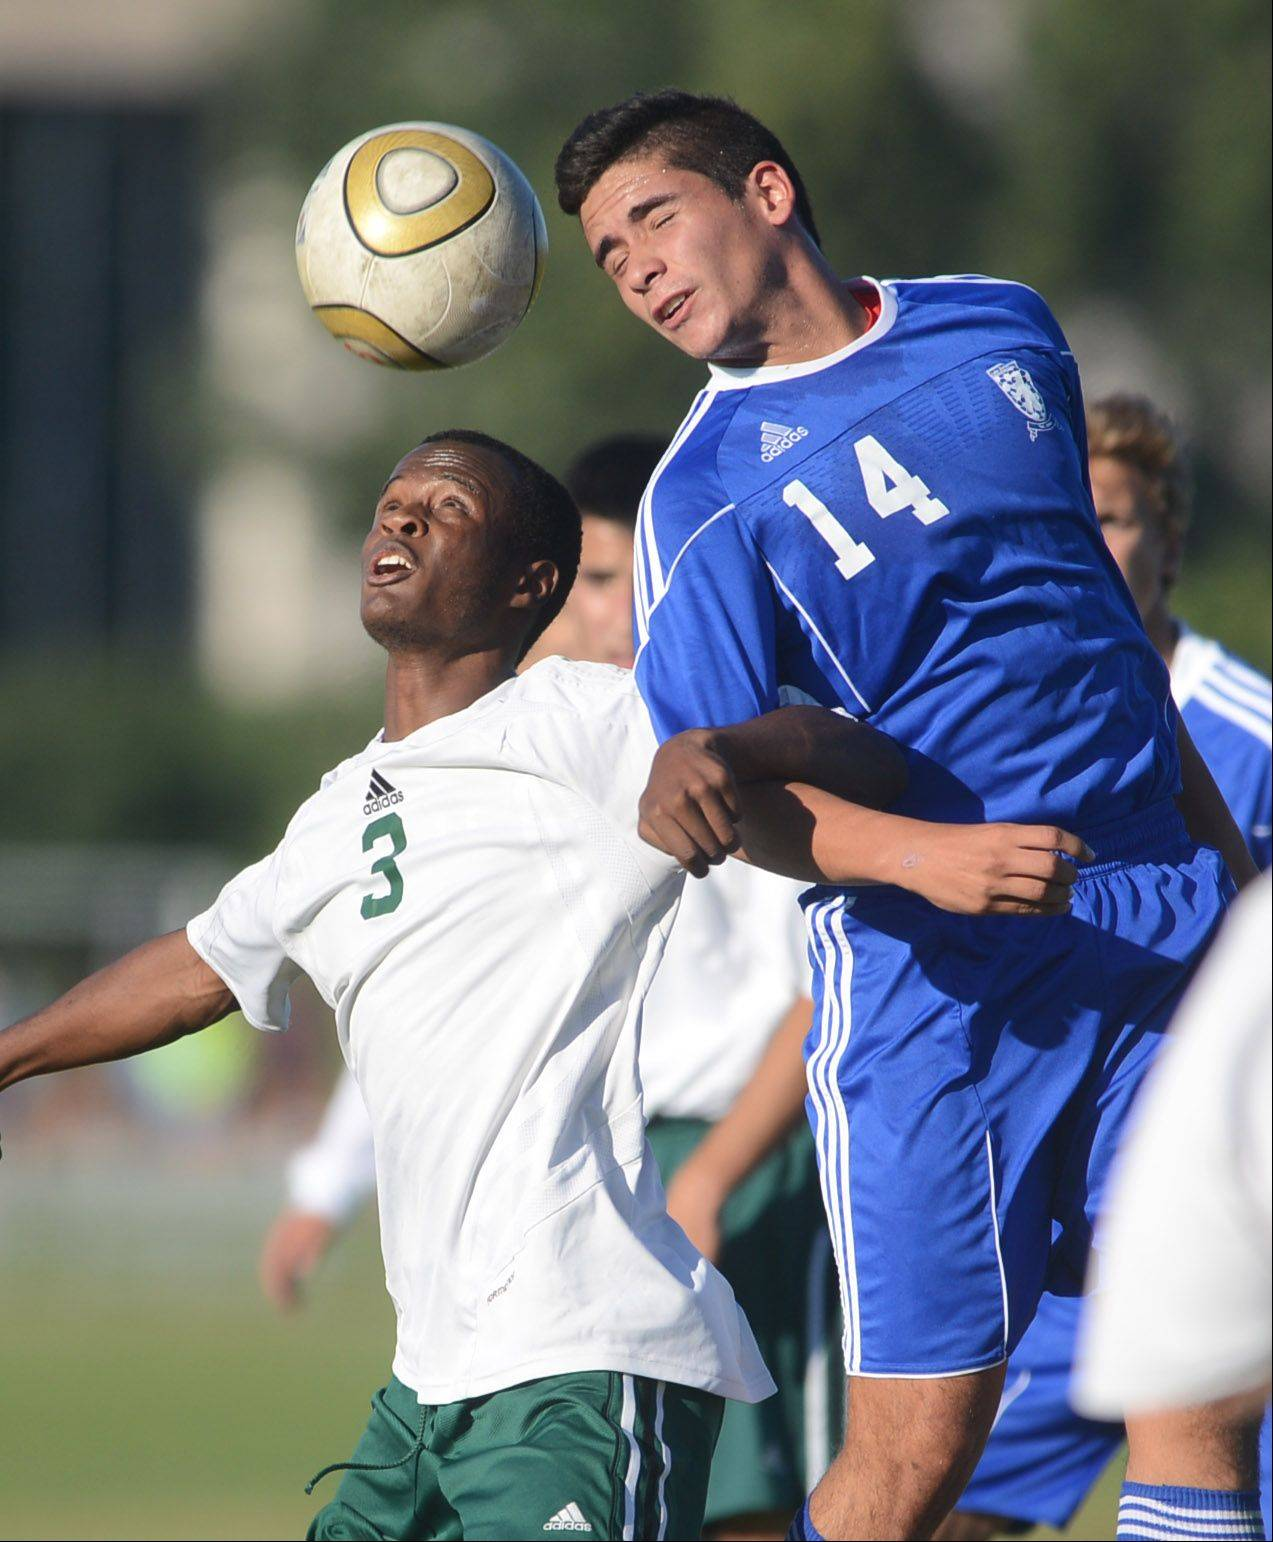 Stevenson's Kamal Starks (3) keeps a sharp eye on the ball under pressure from Lake Zurich's Miguel Hernandez during Monday's soccer game in Vernon Hills.